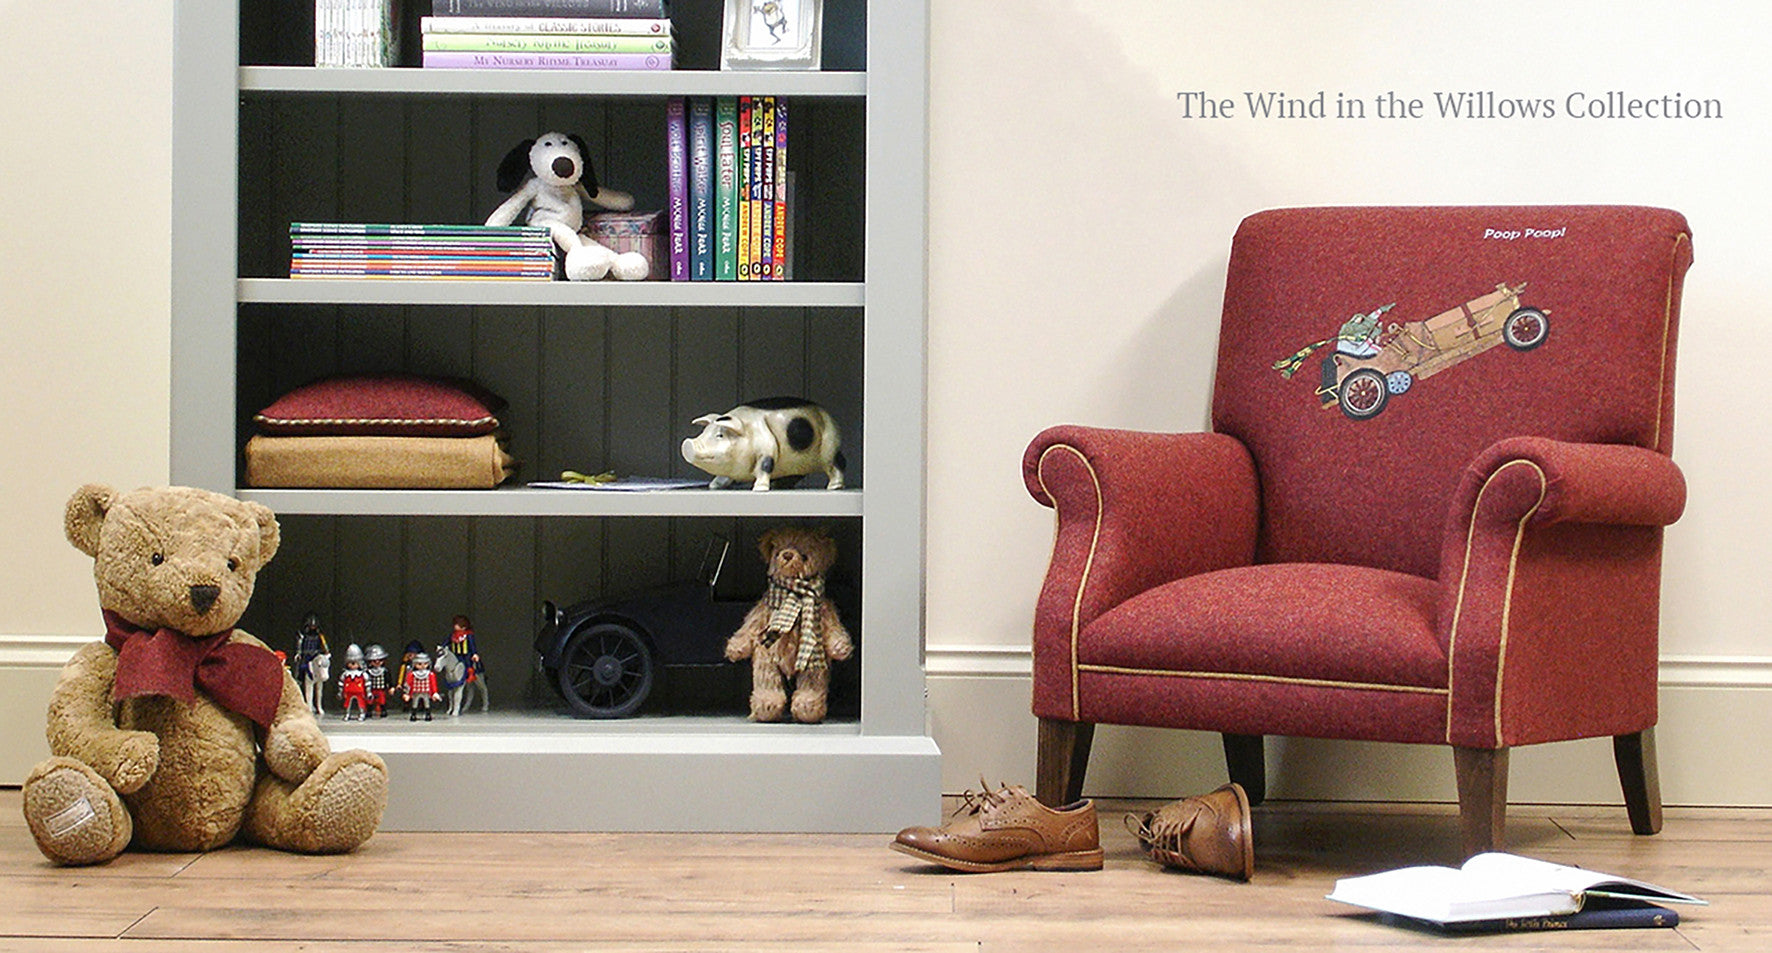 Children's Armchair - Wind in the Willows Collection